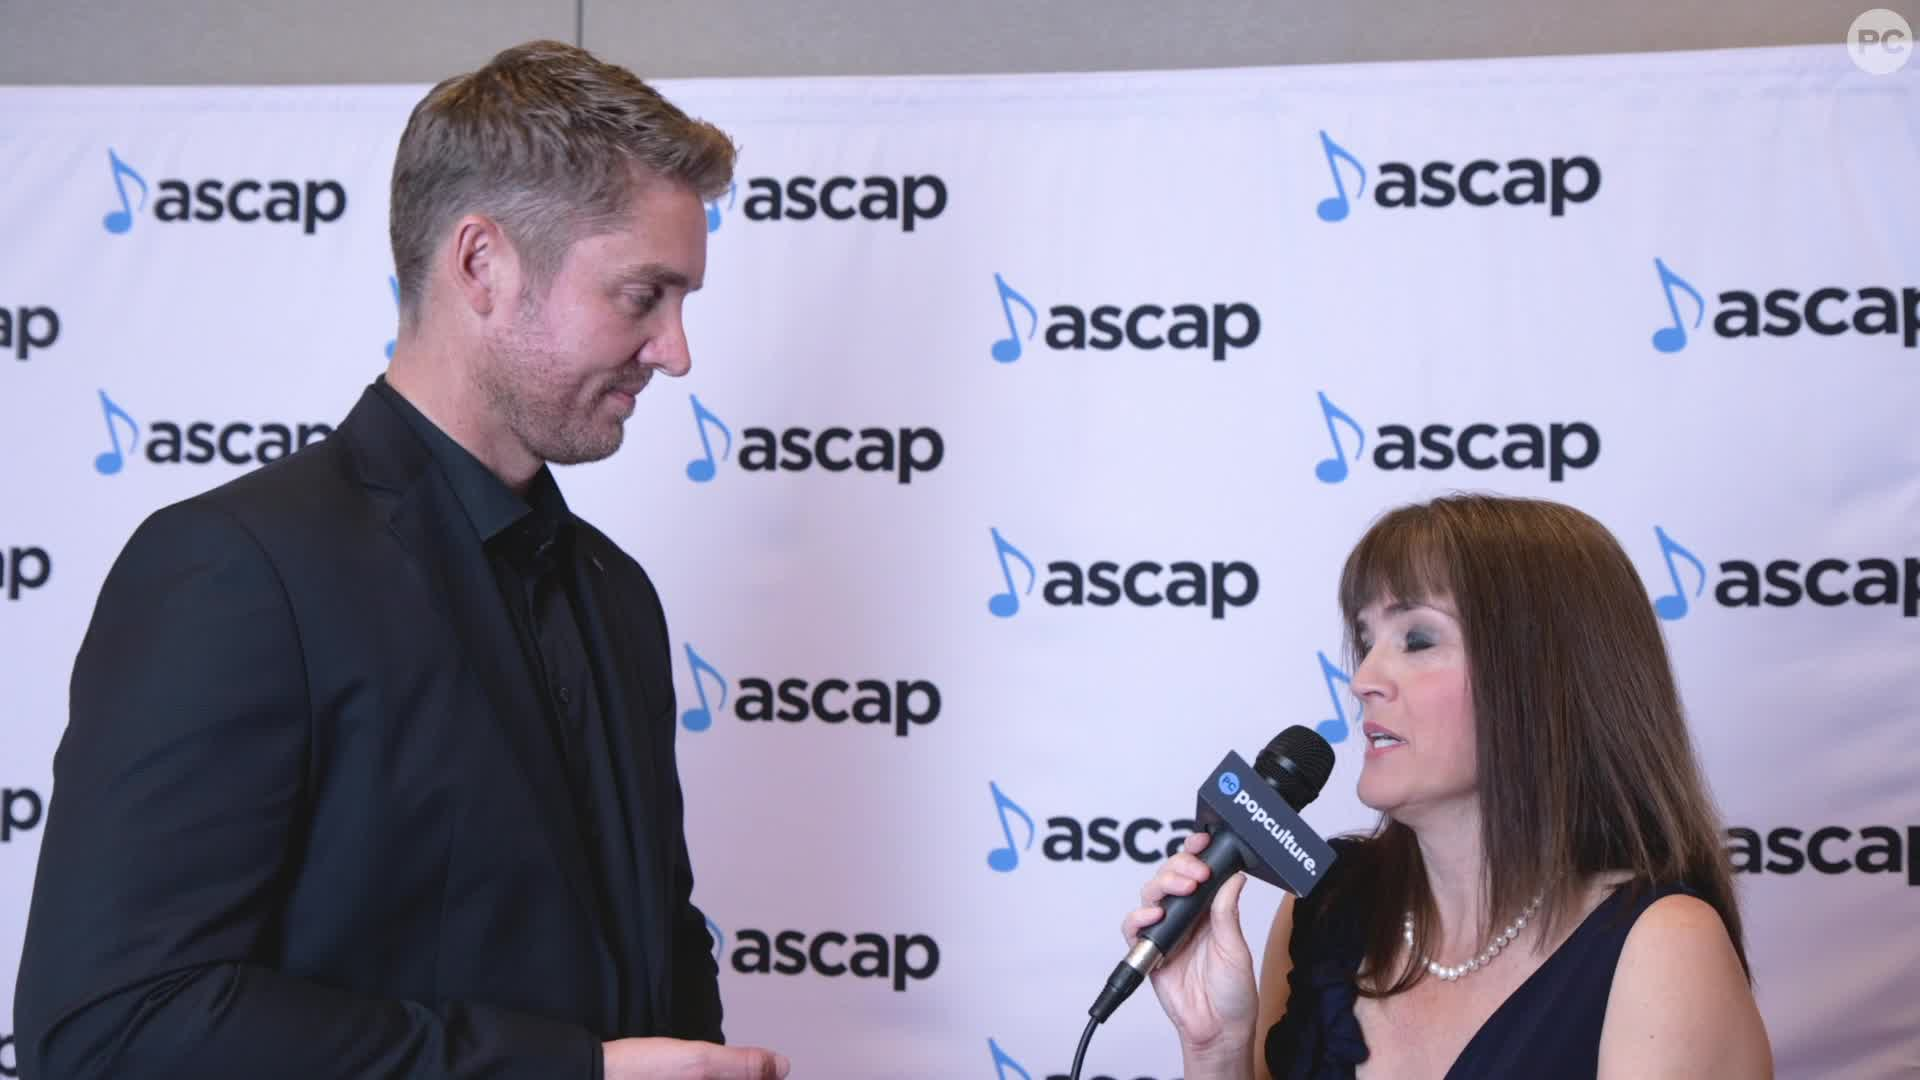 Brett Young - 2019 ASCAP Awards Ceremony screen capture